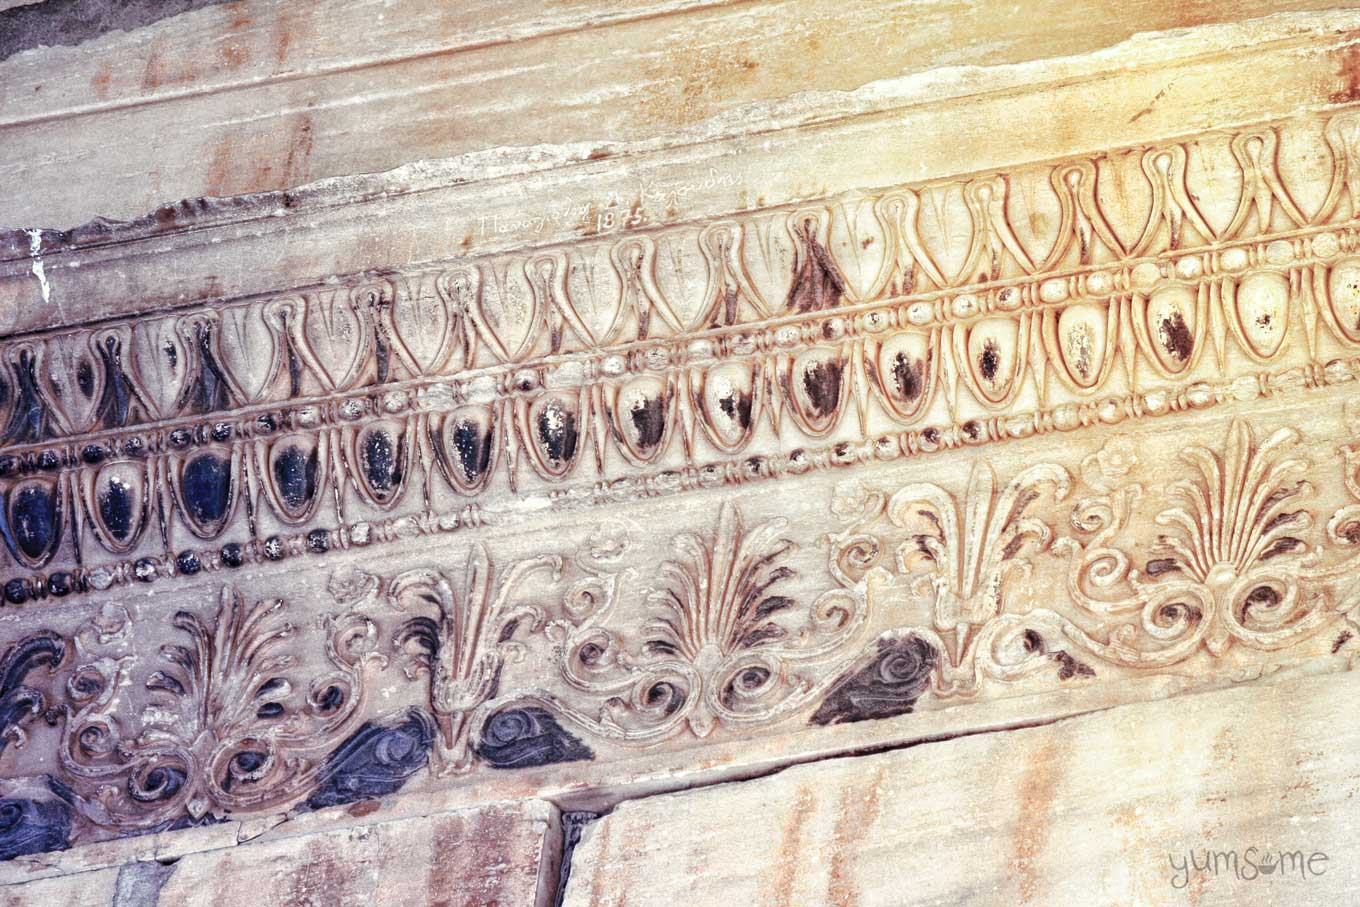 sculptural detail on the pediment of the Erechtheion | yumsome.com